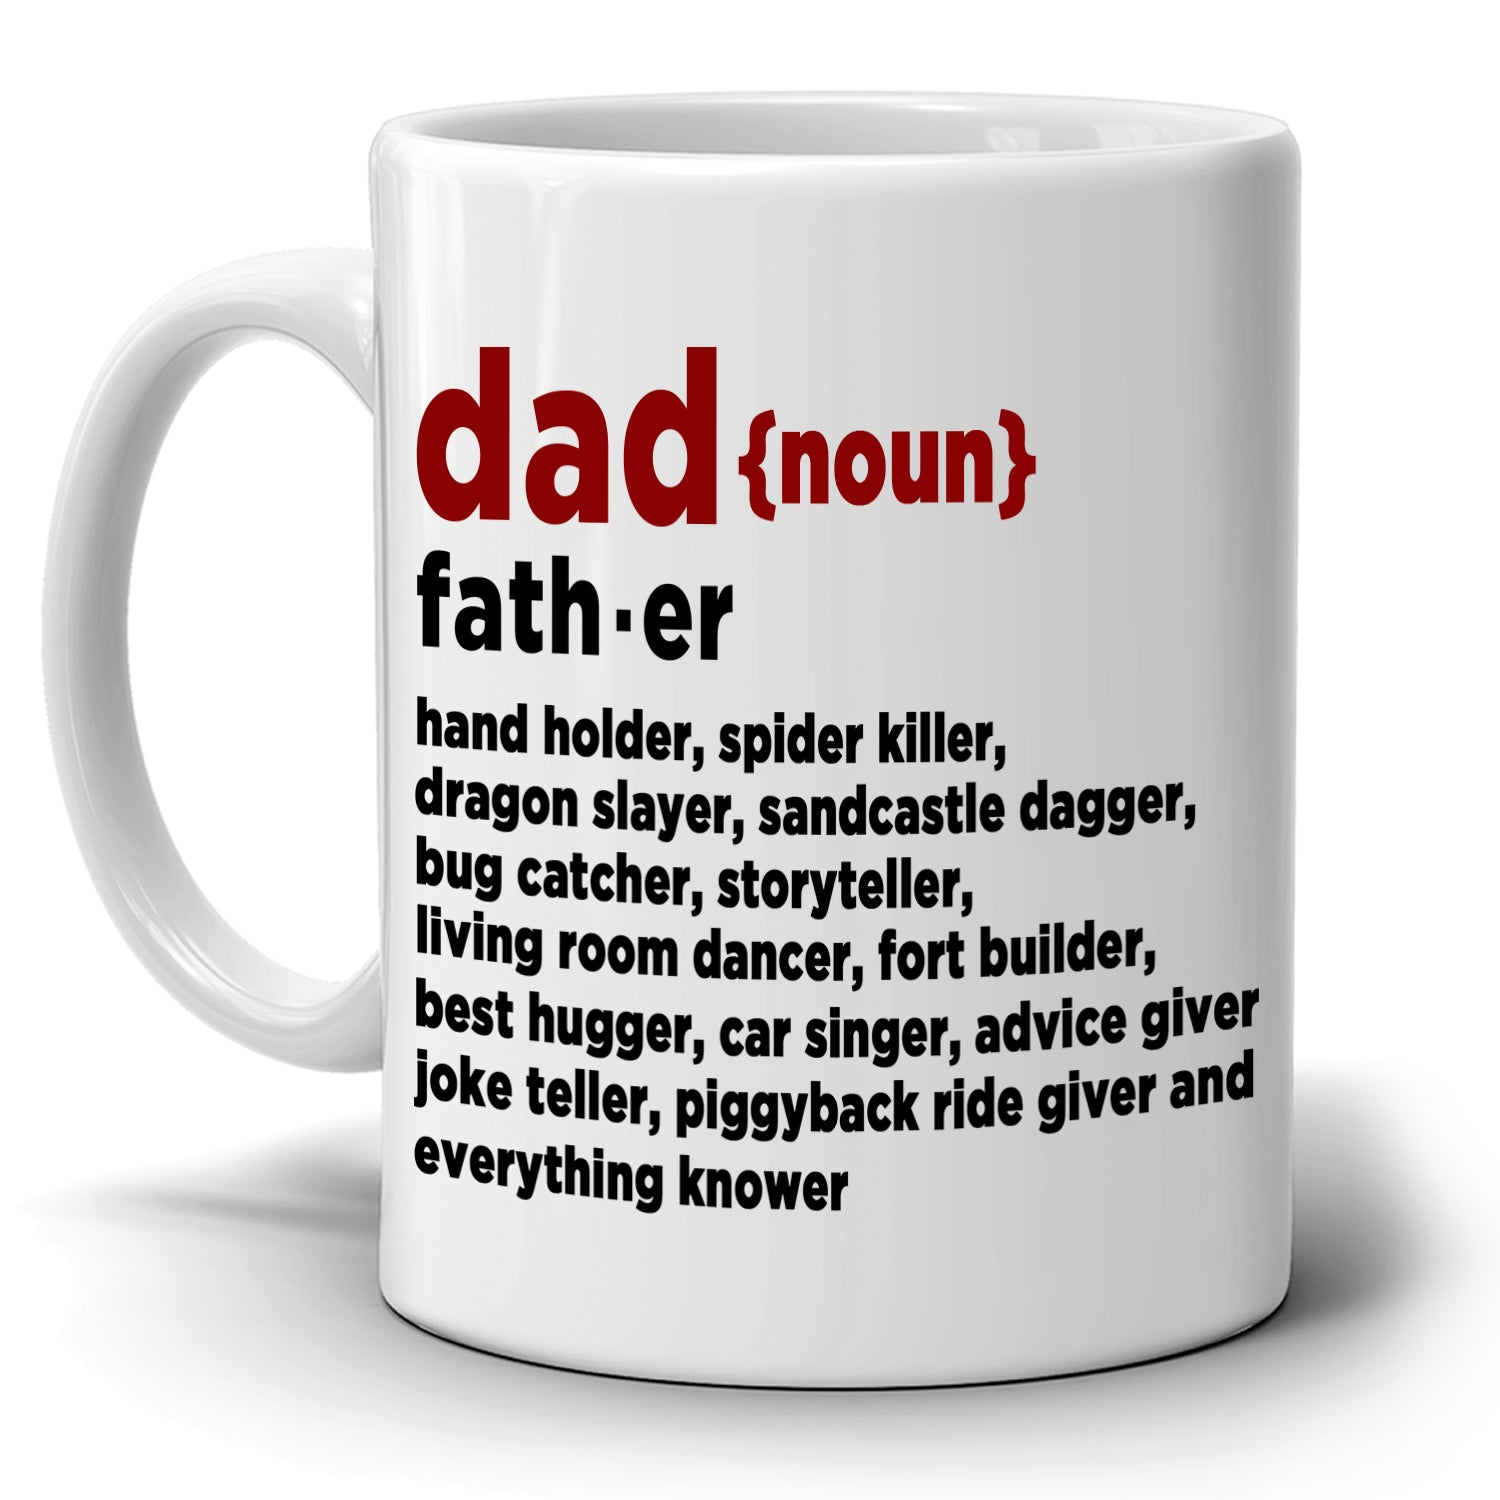 Dad Definition Funny Coffee Gift Mug Perfect Novelty Birthday Fathers Day Christmas Gifts For Papa Printed On Both Sides